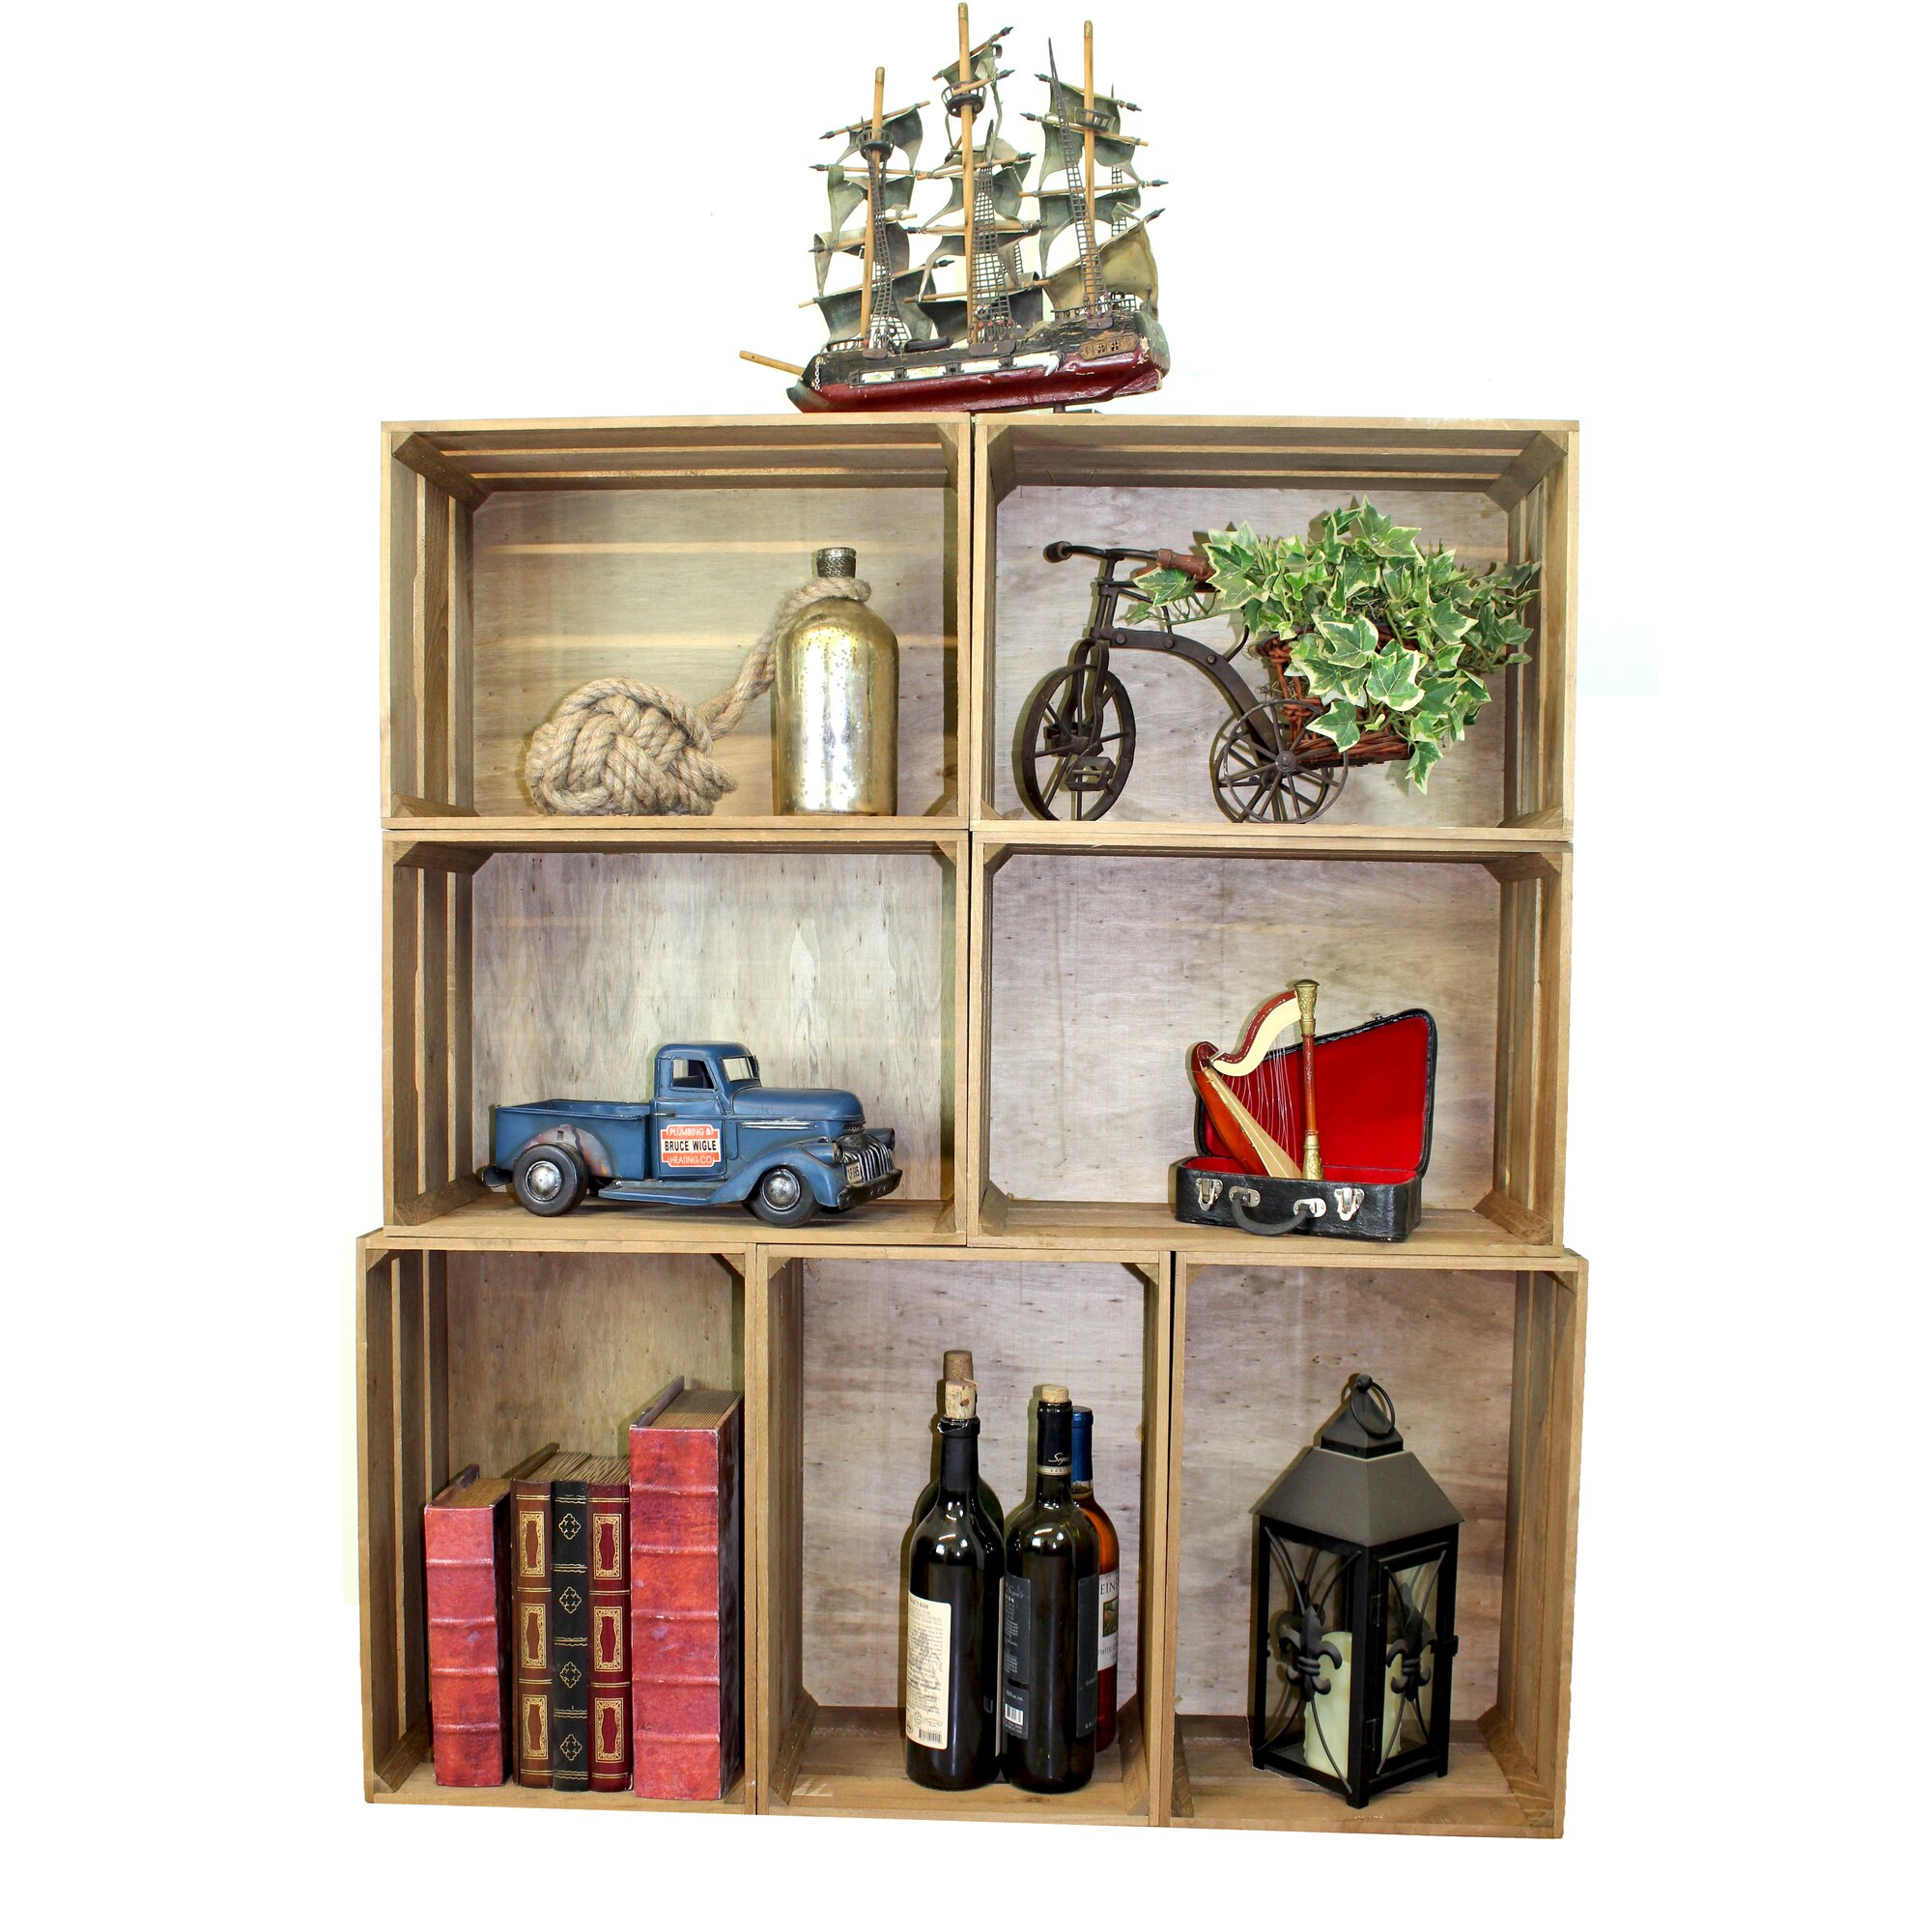 stackable antique style wooden crate decorative shelving - Decorative Shelving